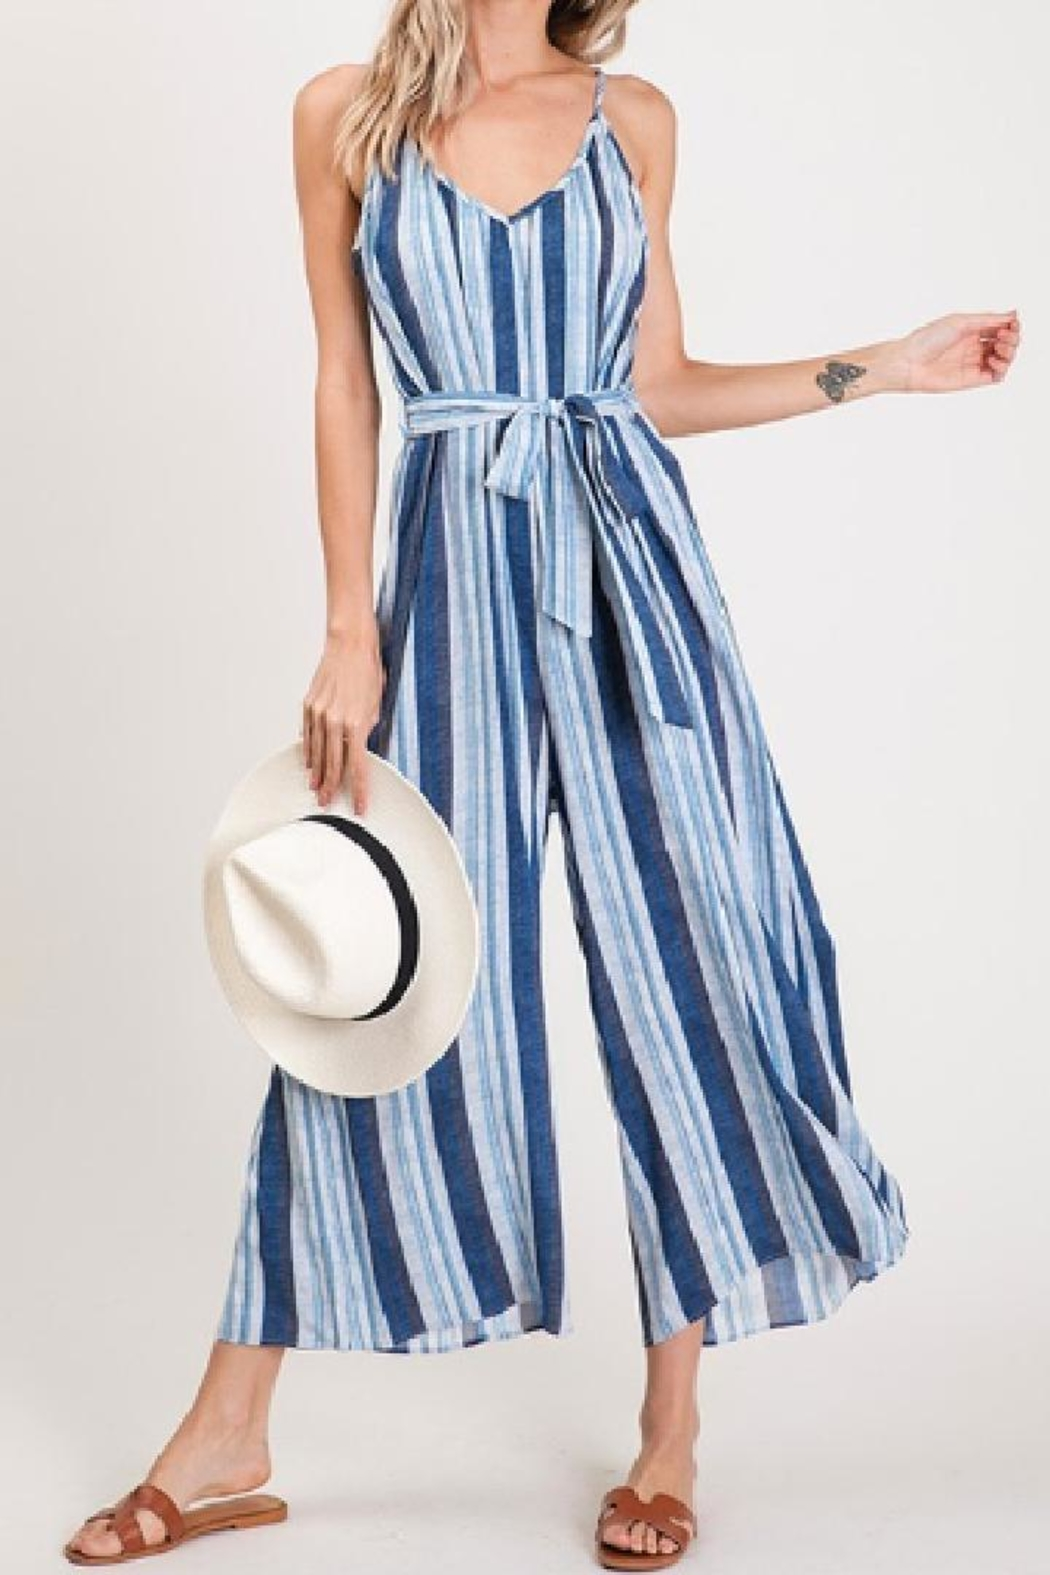 CY Fashion Blue Striped Jumpsuit - Main Image